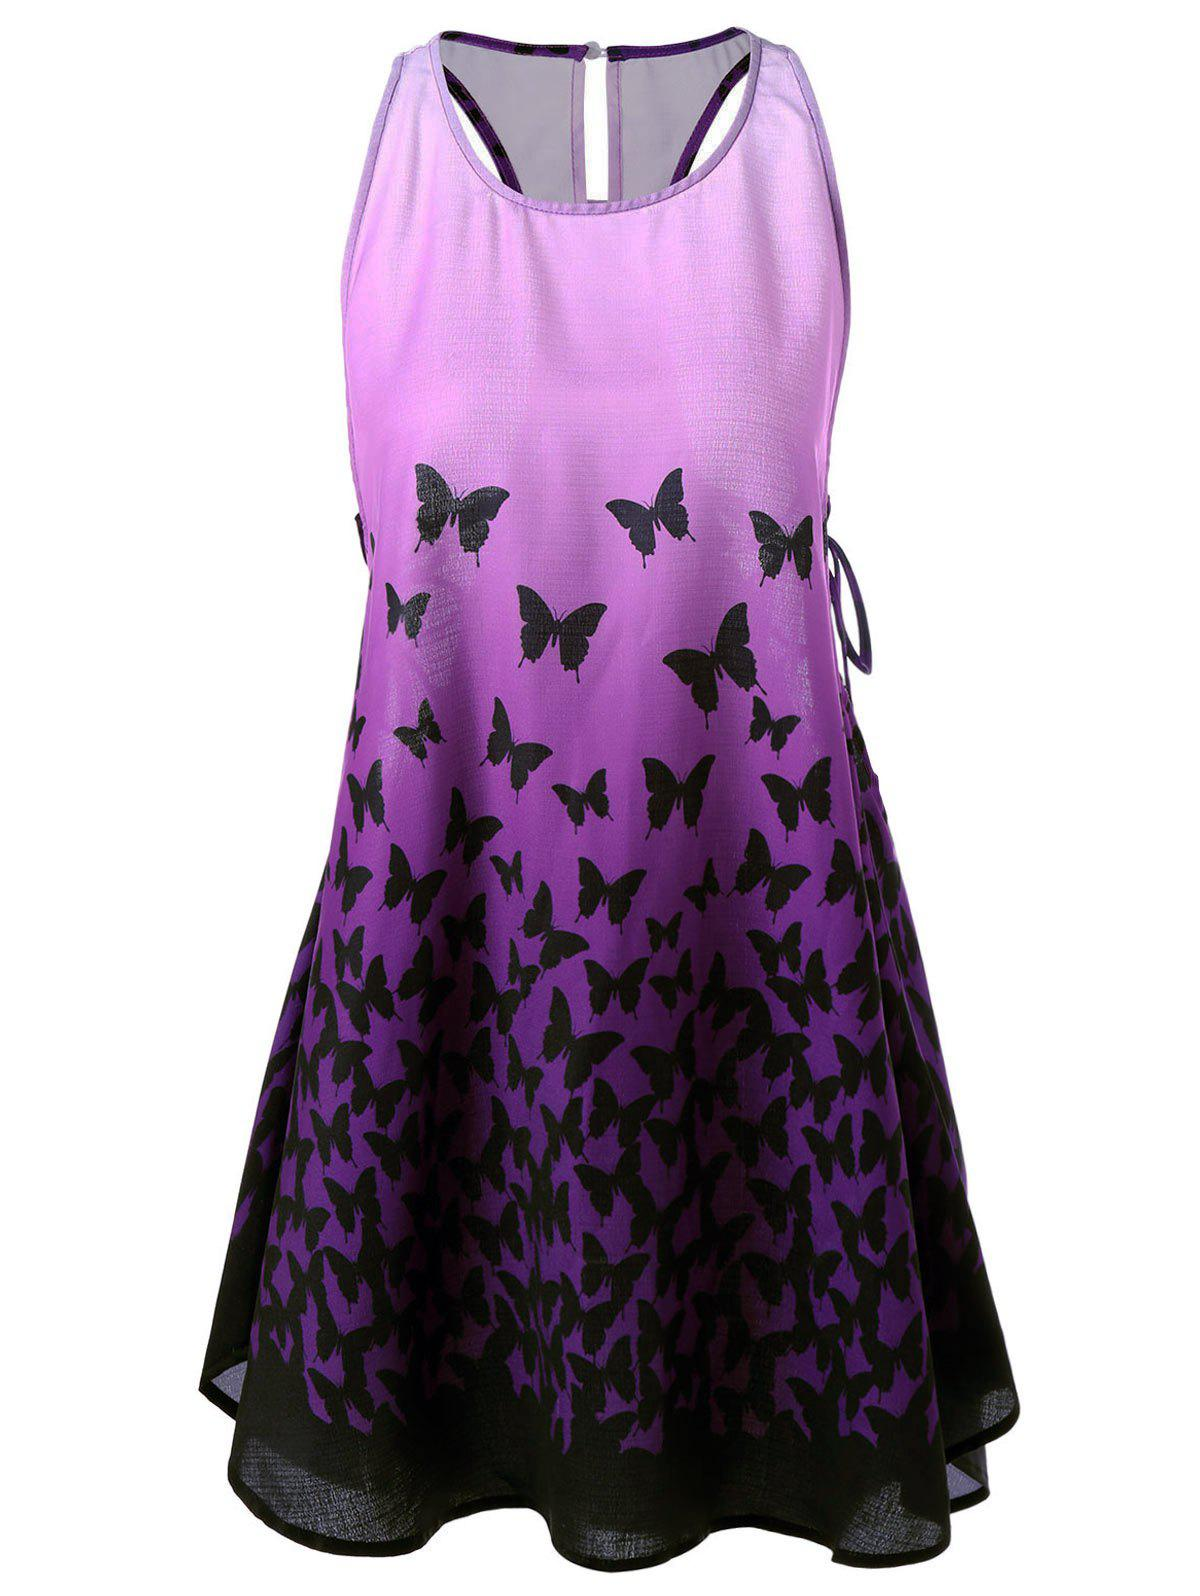 Ombre Butterfly Lace Up Racerback Tank Dress - PURPLE L